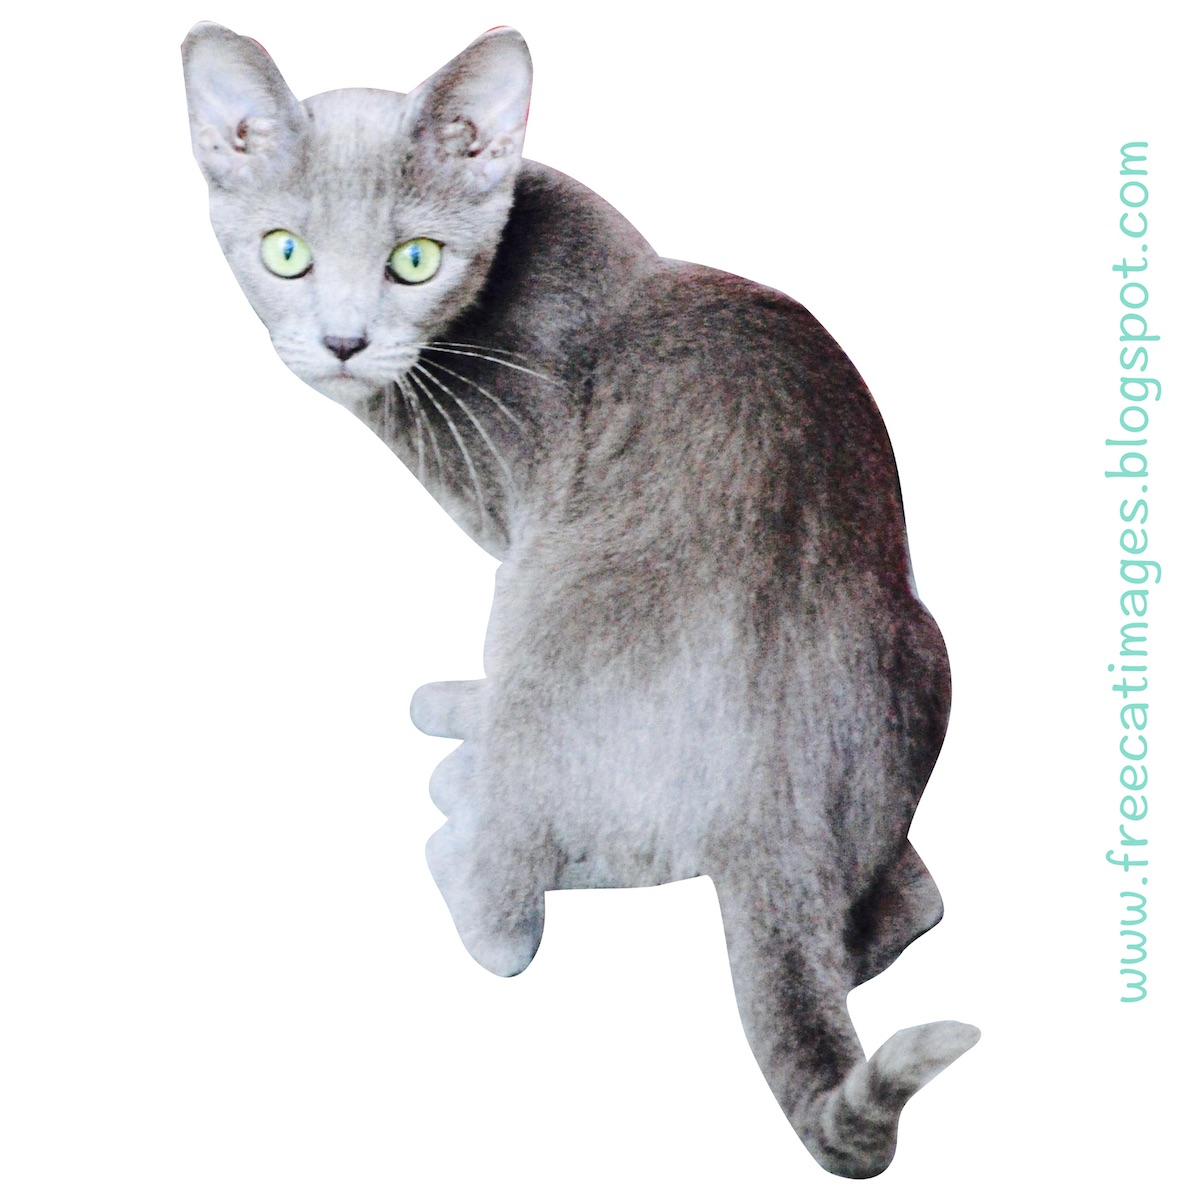 pituitary dwarfism in cats